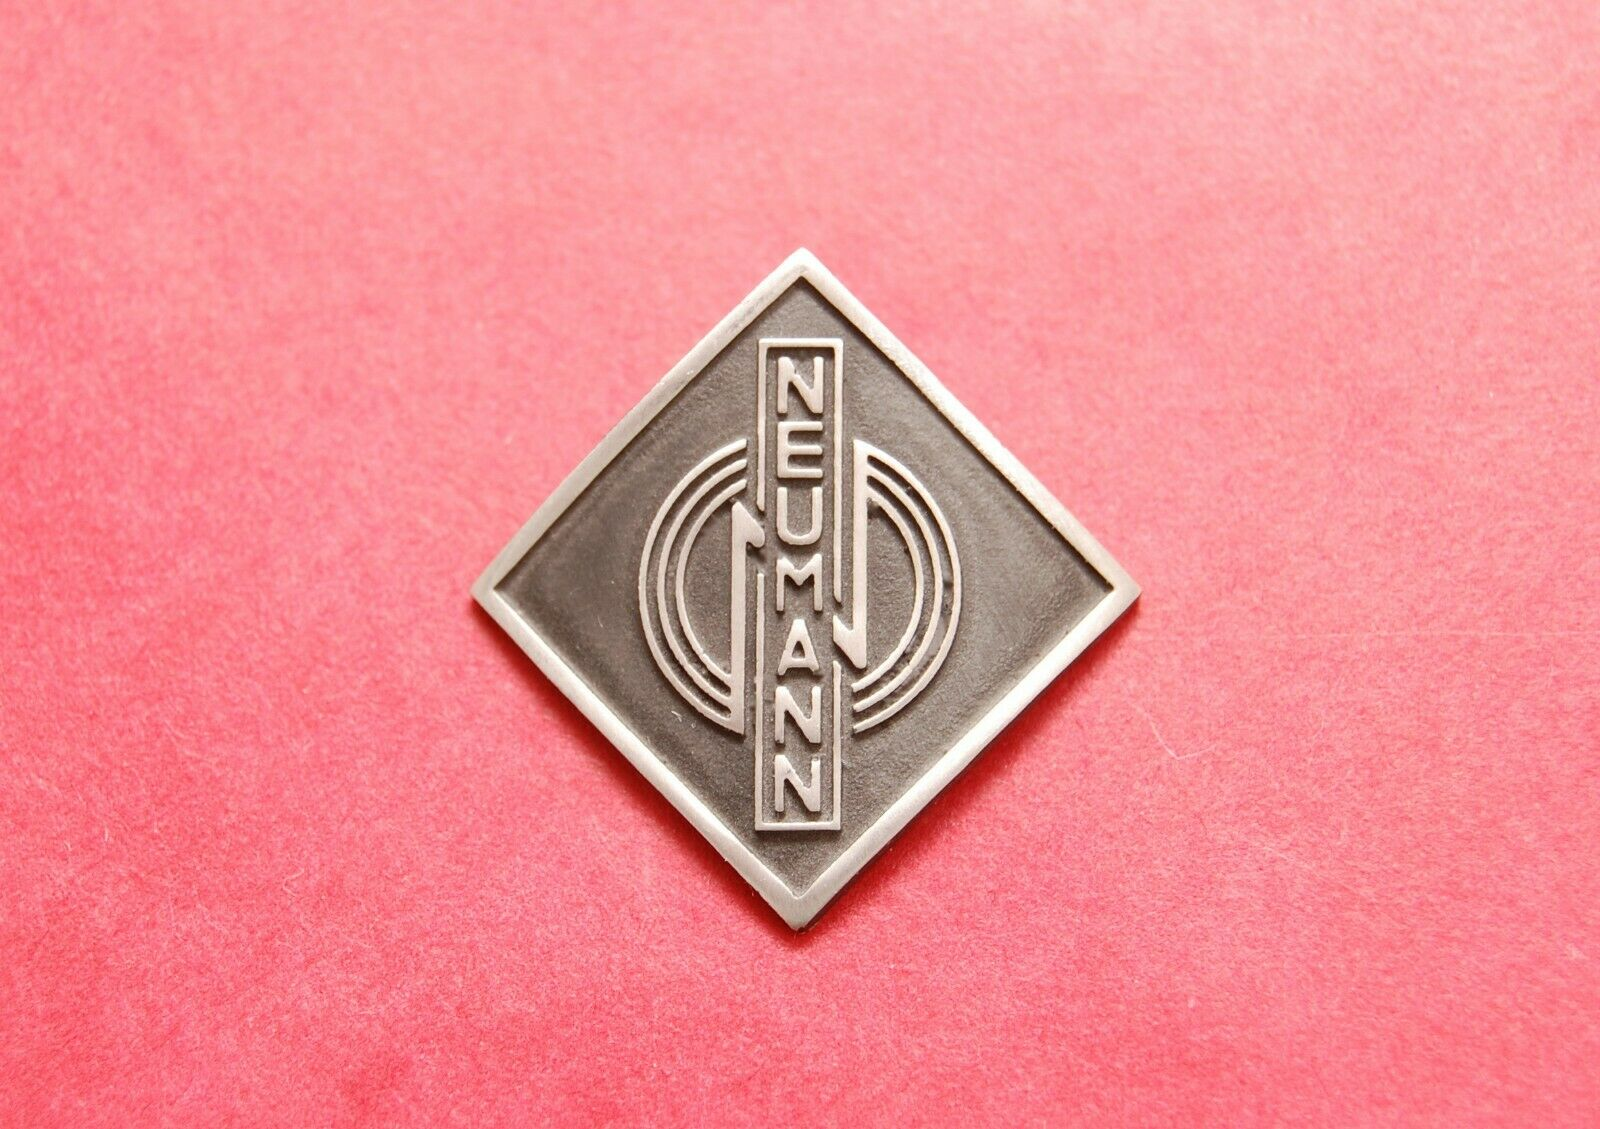 Neumann Logo Label for Vintage German Microphones U47 or CMV3